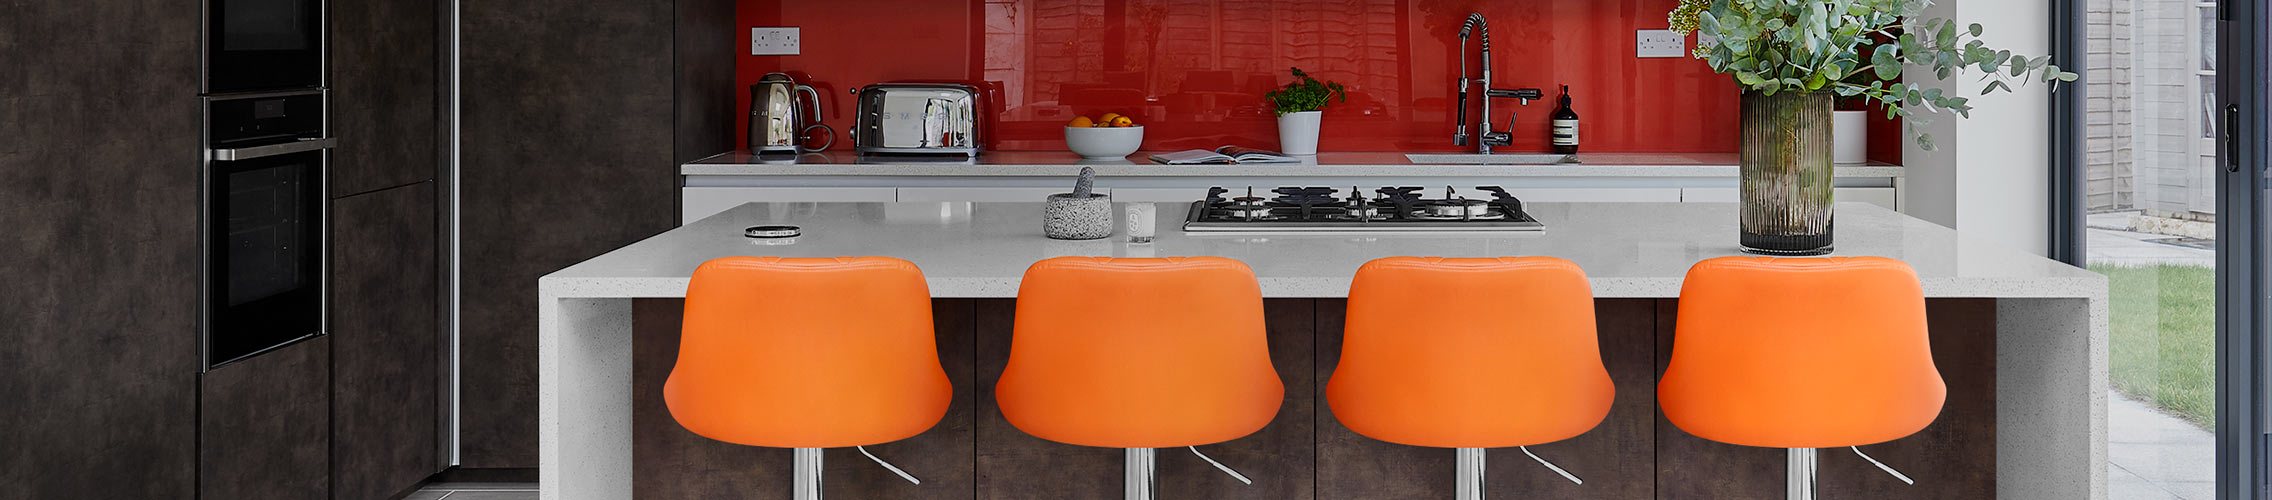 Orange Breakfast Bar Stools